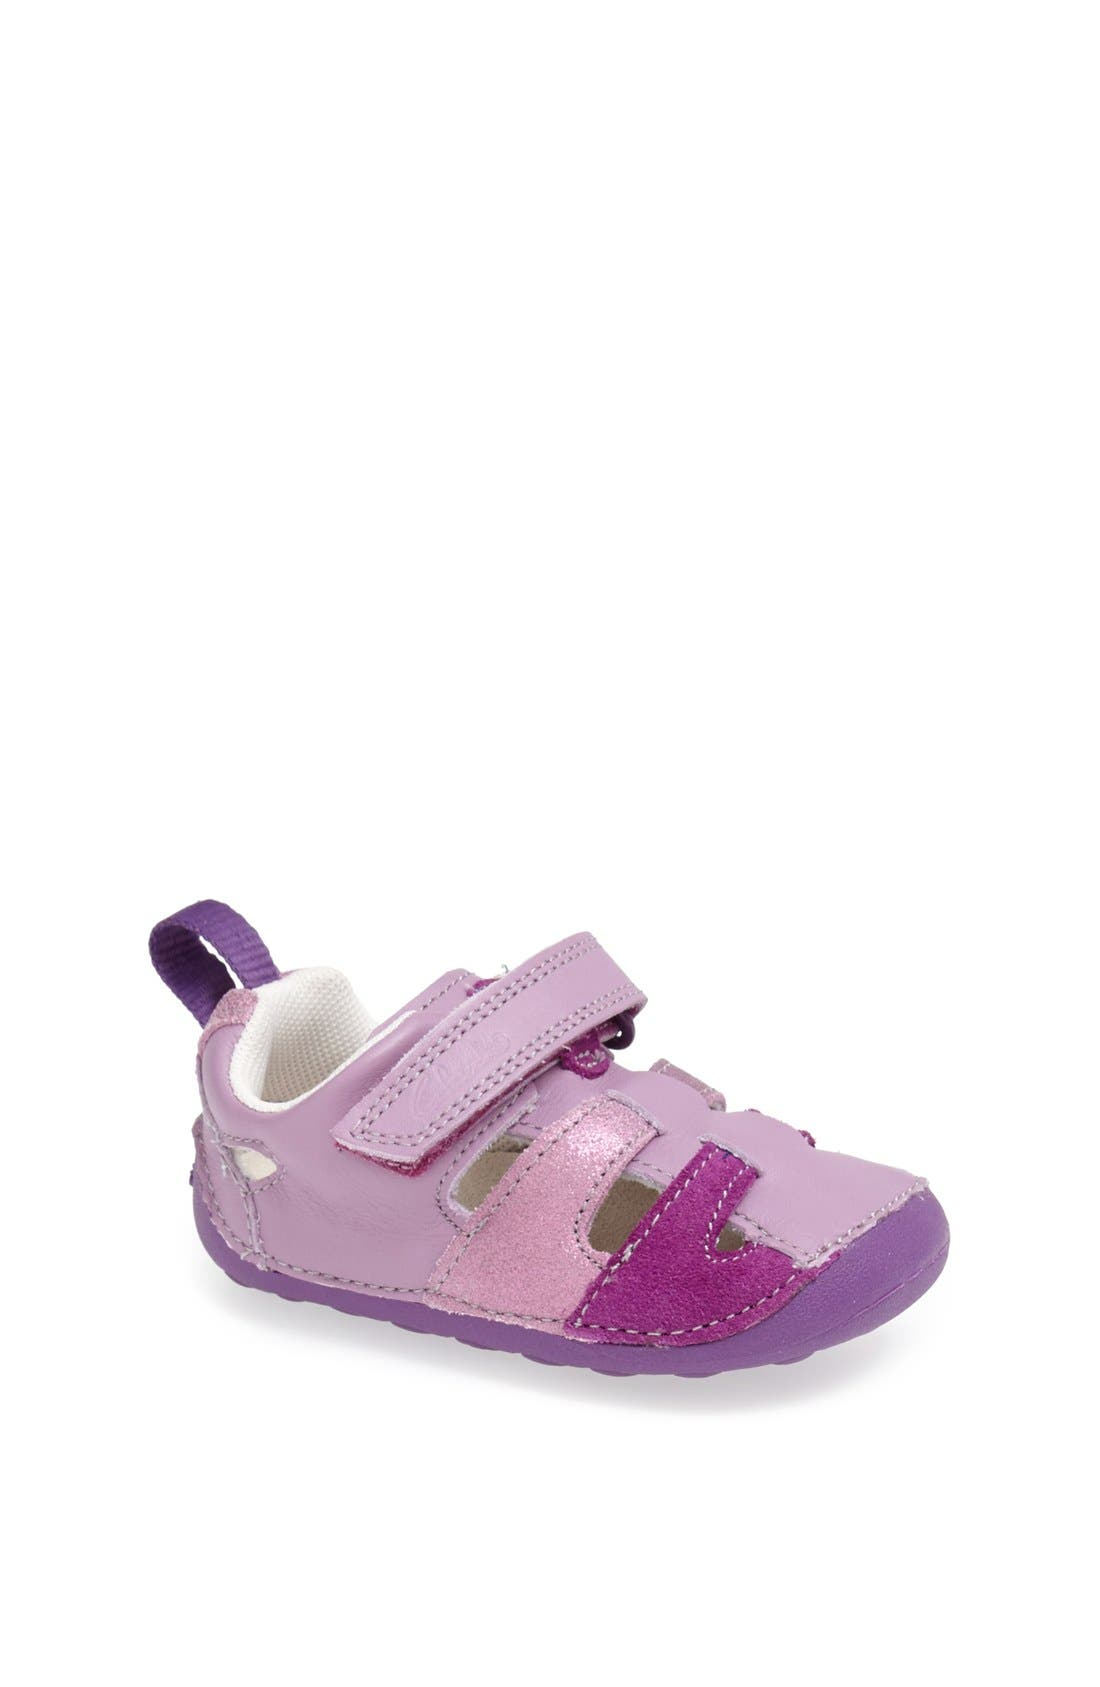 Alternate Image 1 Selected - Clarks® 'Tiny Girl' Leather Sandal (Baby & Walker)